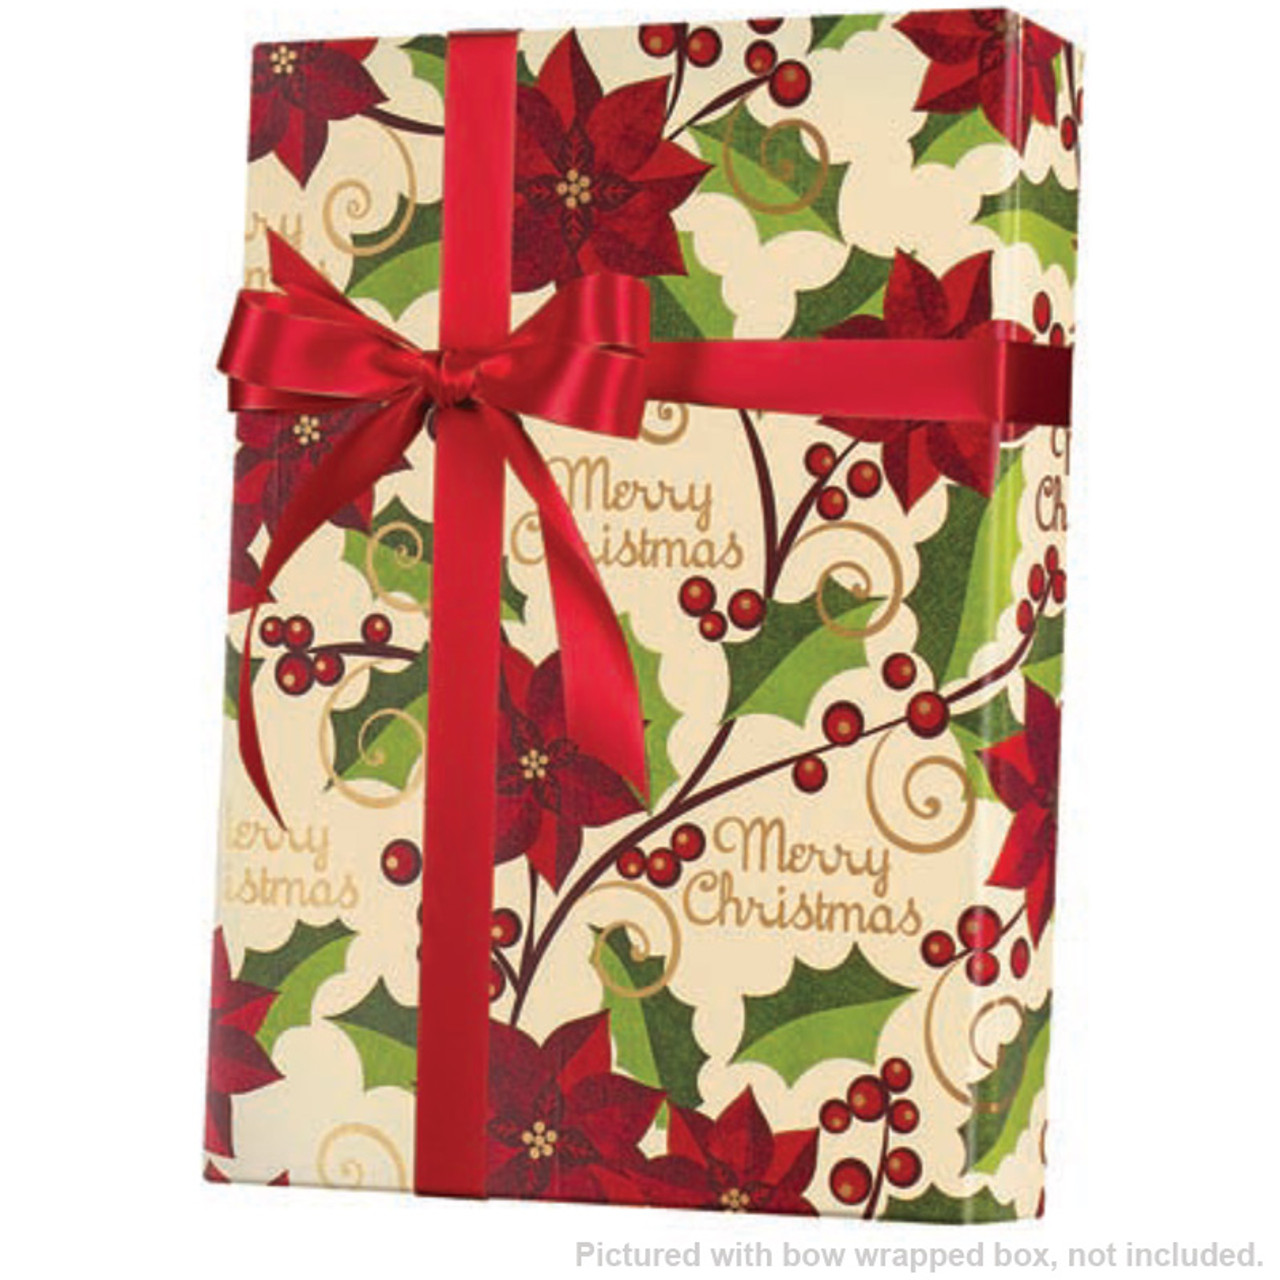 a very merry christmas gift wrap 200 or 830 sq ft a very merry christmas gift wrap 200 or 830 sq ft